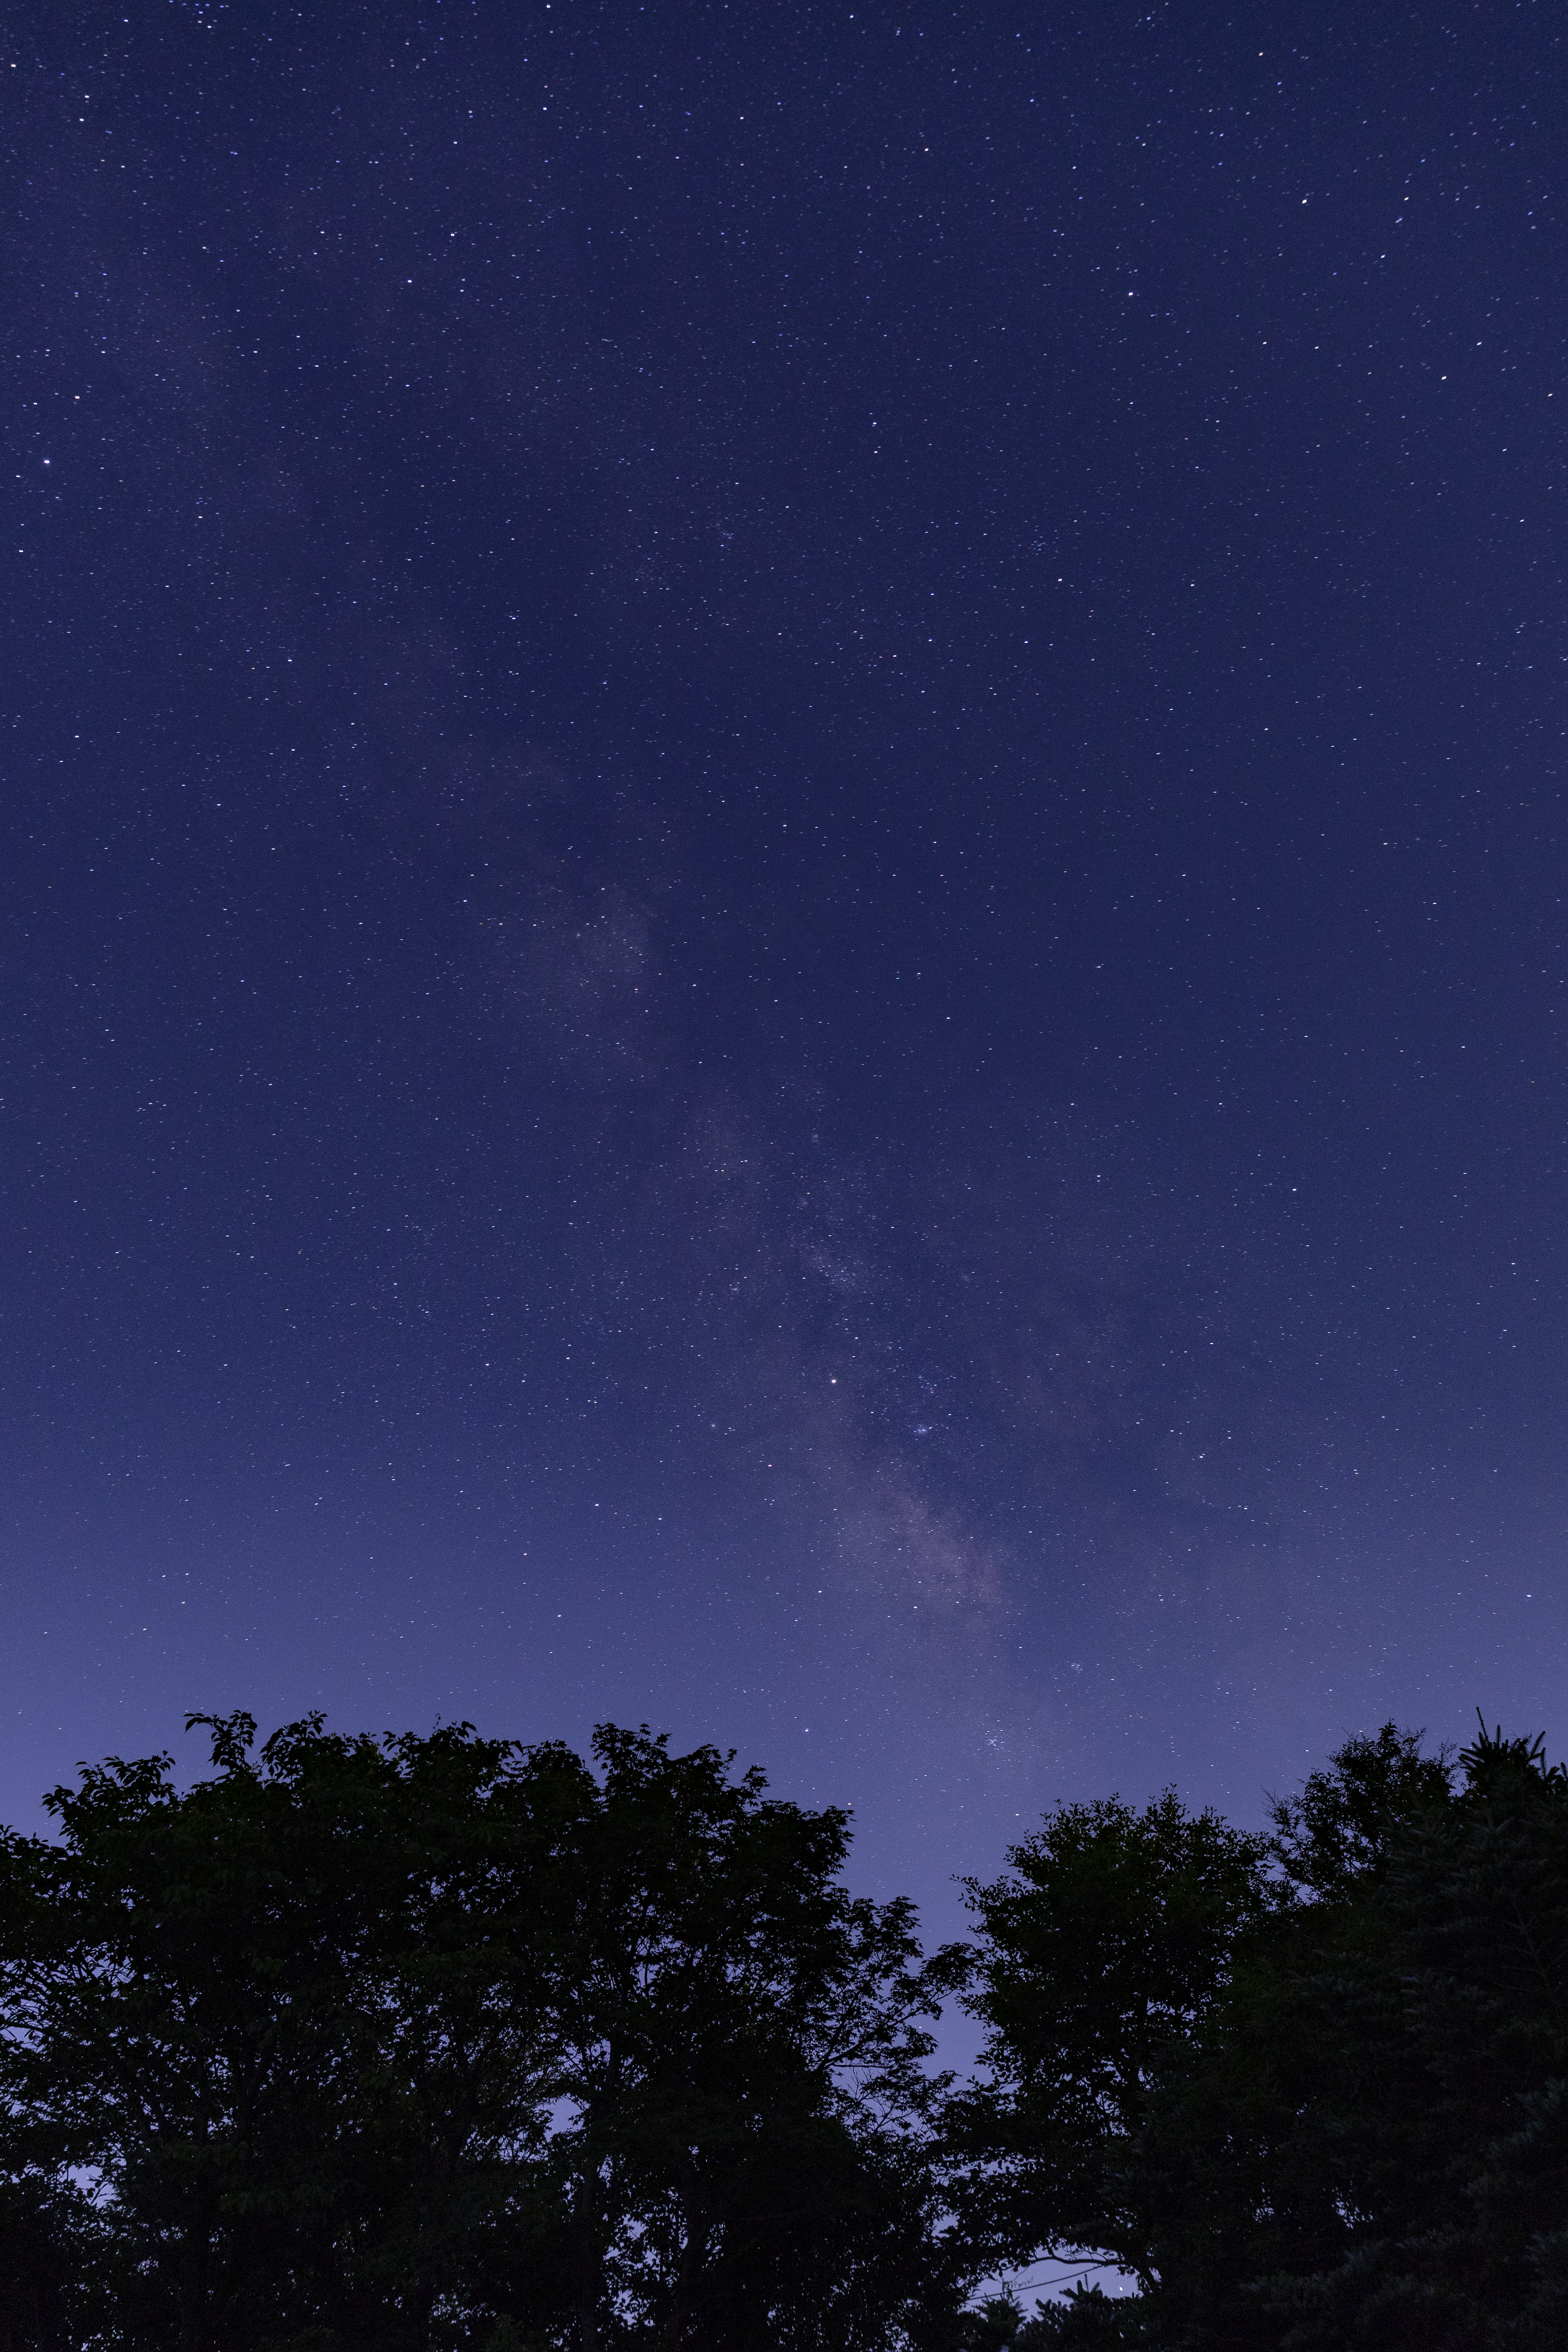 silhouette of tall trees under starry night